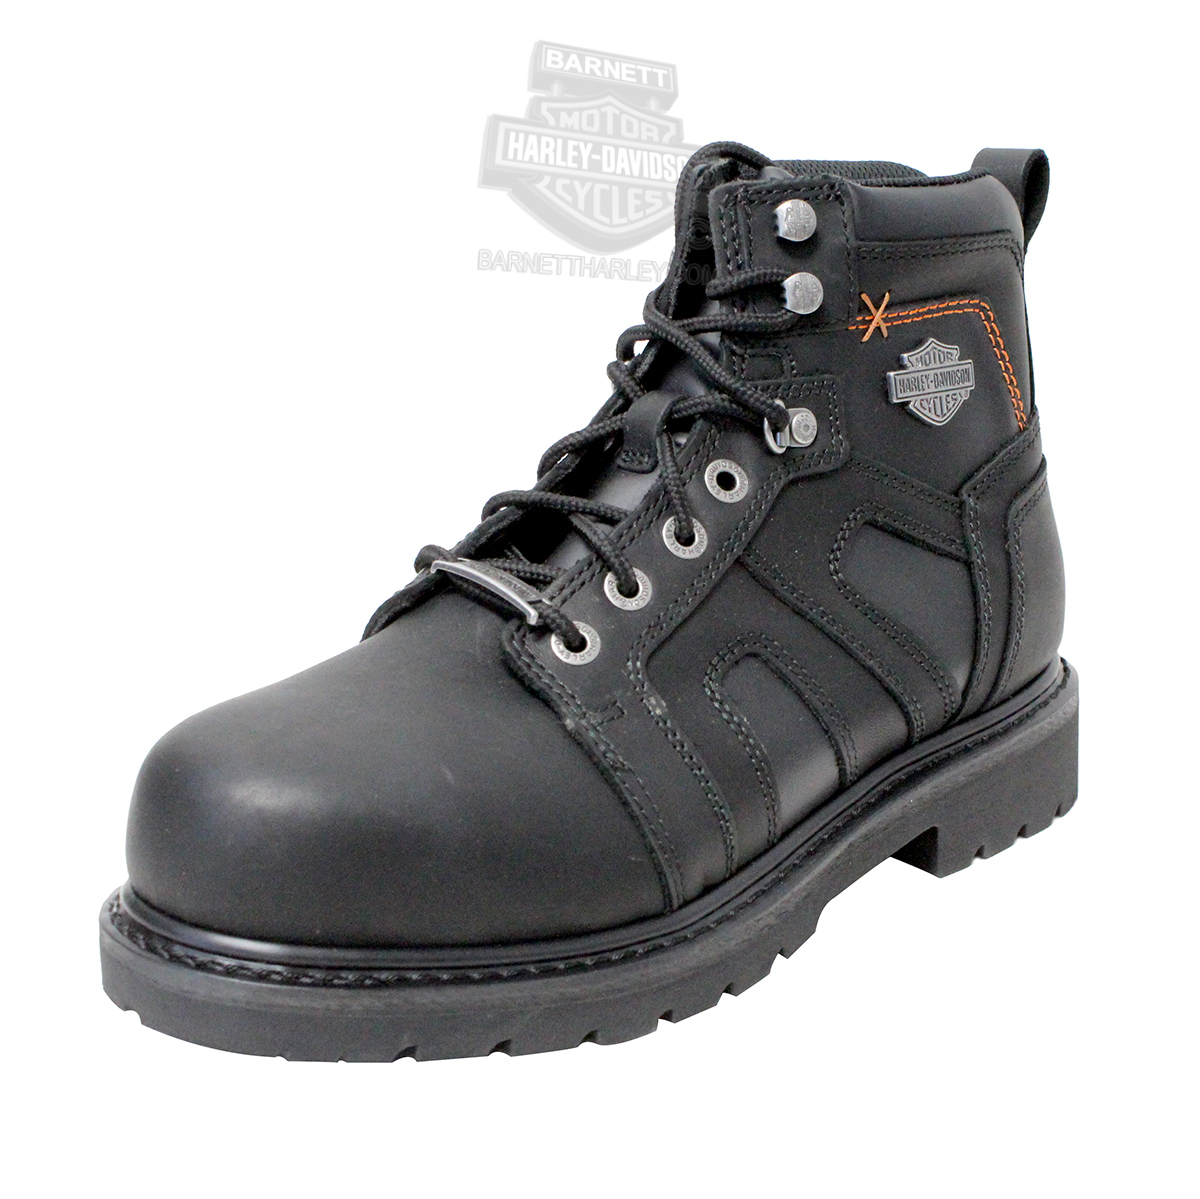 93176 harley davidson 174 mens chad steel toe black leather